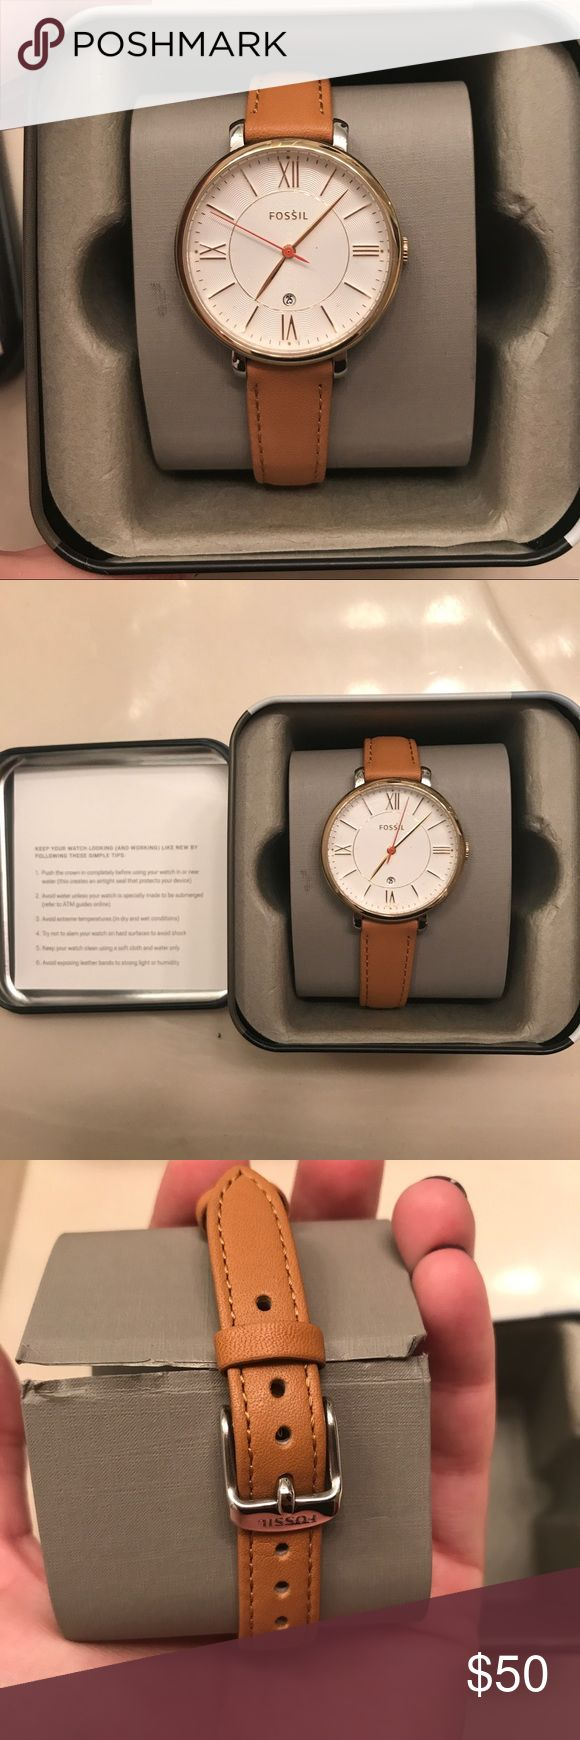 Fossil women's leather strap watch - New! It's a super cute Fossil women's watch! It's brand new in box. Genuine leather light brown strap and still has the protective plastic cover on top and back of watch. Fossil Accessories Watches